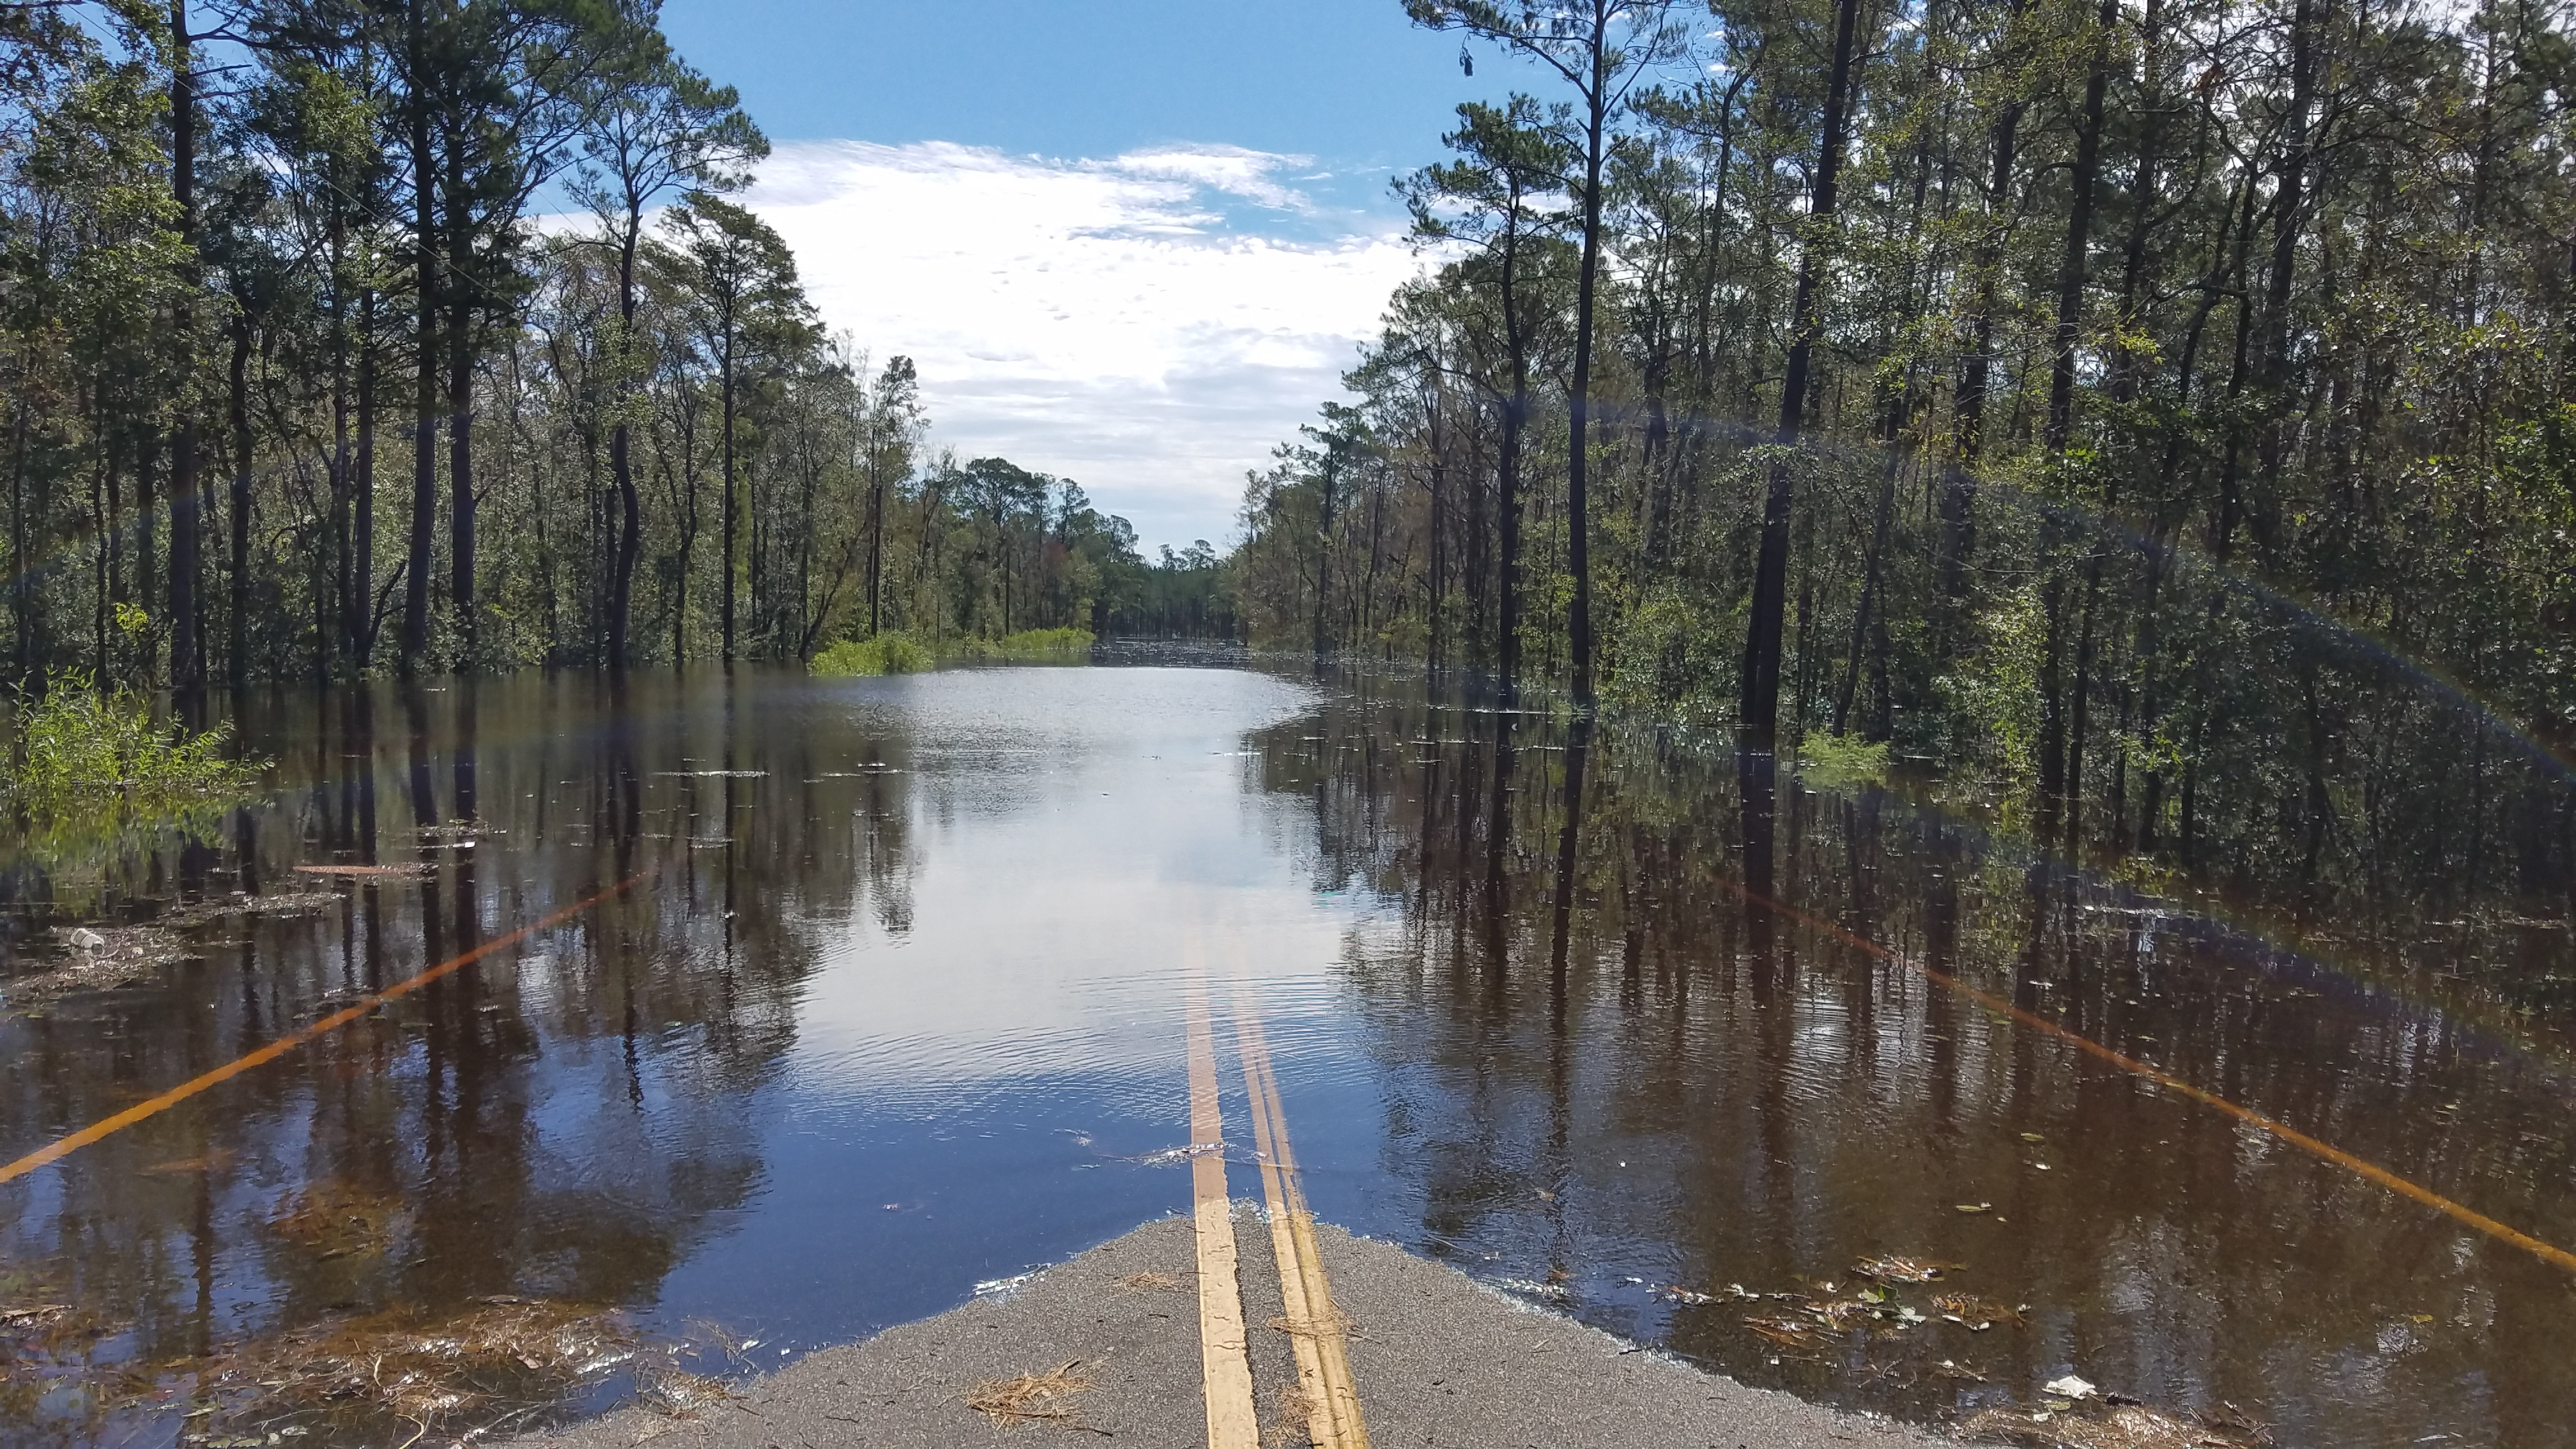 Flooding along Holly Shelter Road near the Island Creek bridge